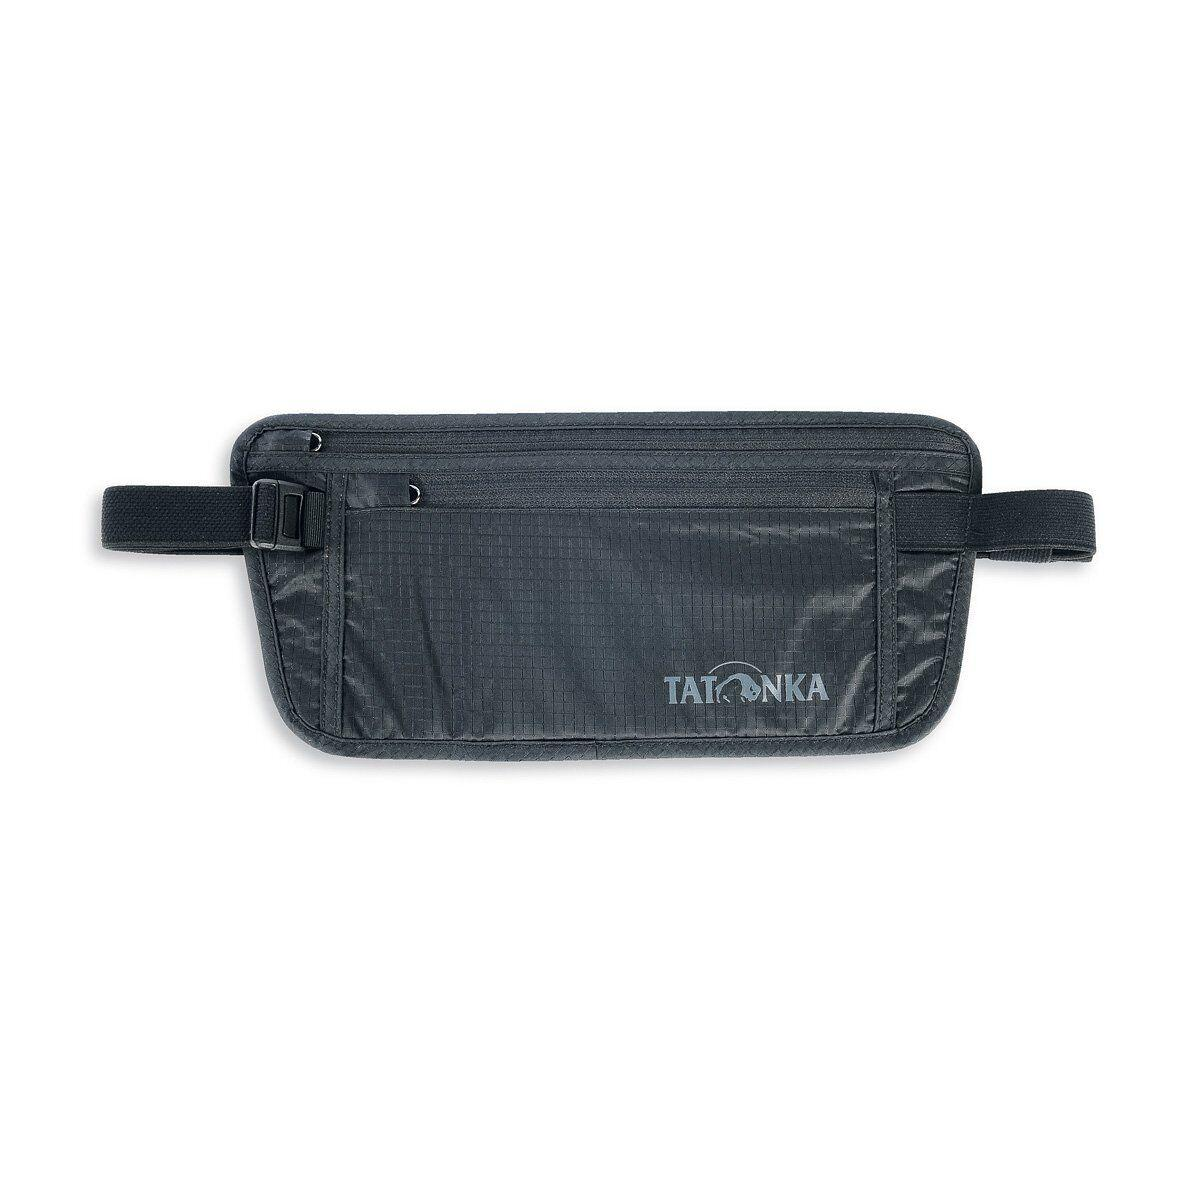 Кошелек нательный Tatonka - Skin Moneybelt Int., Black (TAT 2848.040)